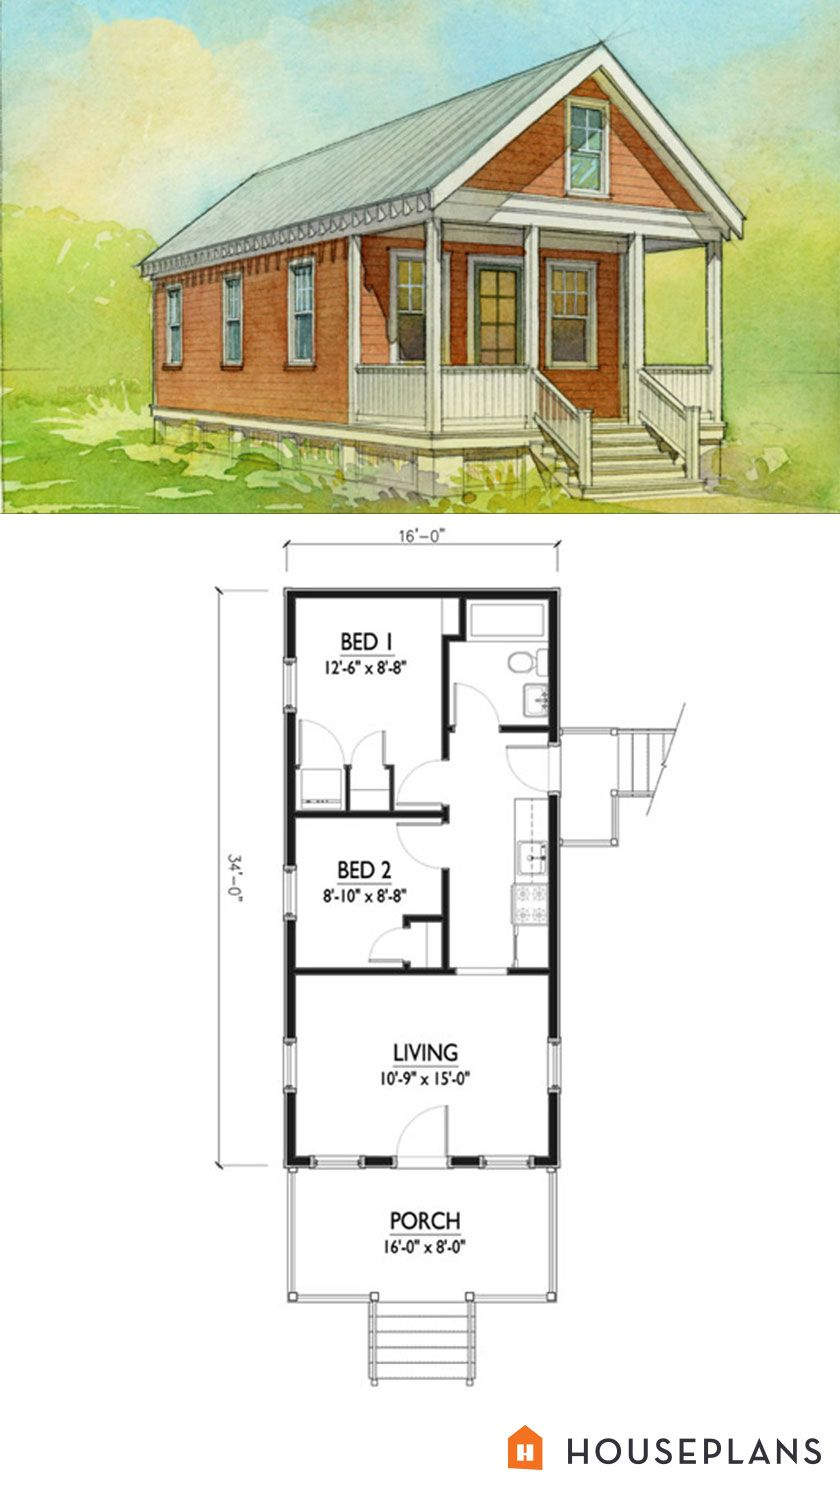 Small Katrina Cottage House Plan 500sft 2br 1 Bath By